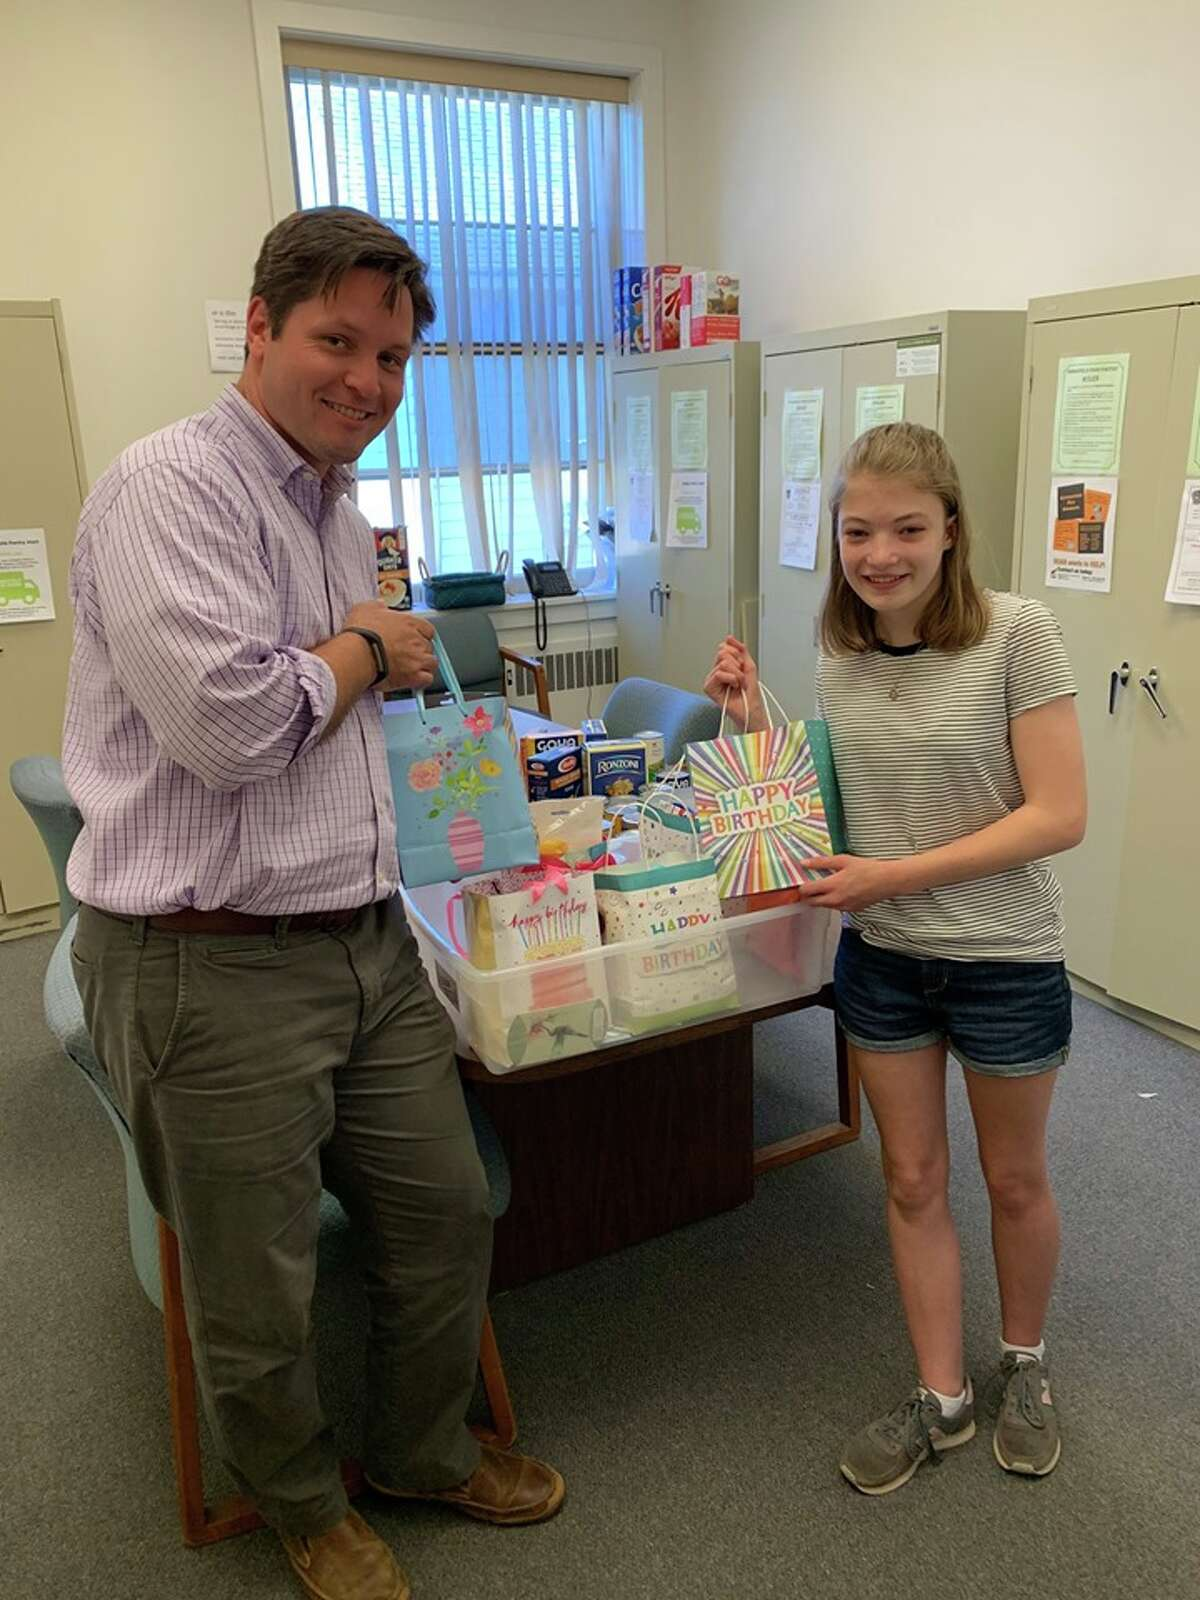 """Devon Noonan, who graduated from East Ridge Middle School in June, stands with Social Services Director Tony Phillips inside the food pantry at town hall. Before her graduation, Devon dropped off a whole bin of """"Birthday Bags."""" She and other students and teachers collected birthday bag items for food pantry consumers."""